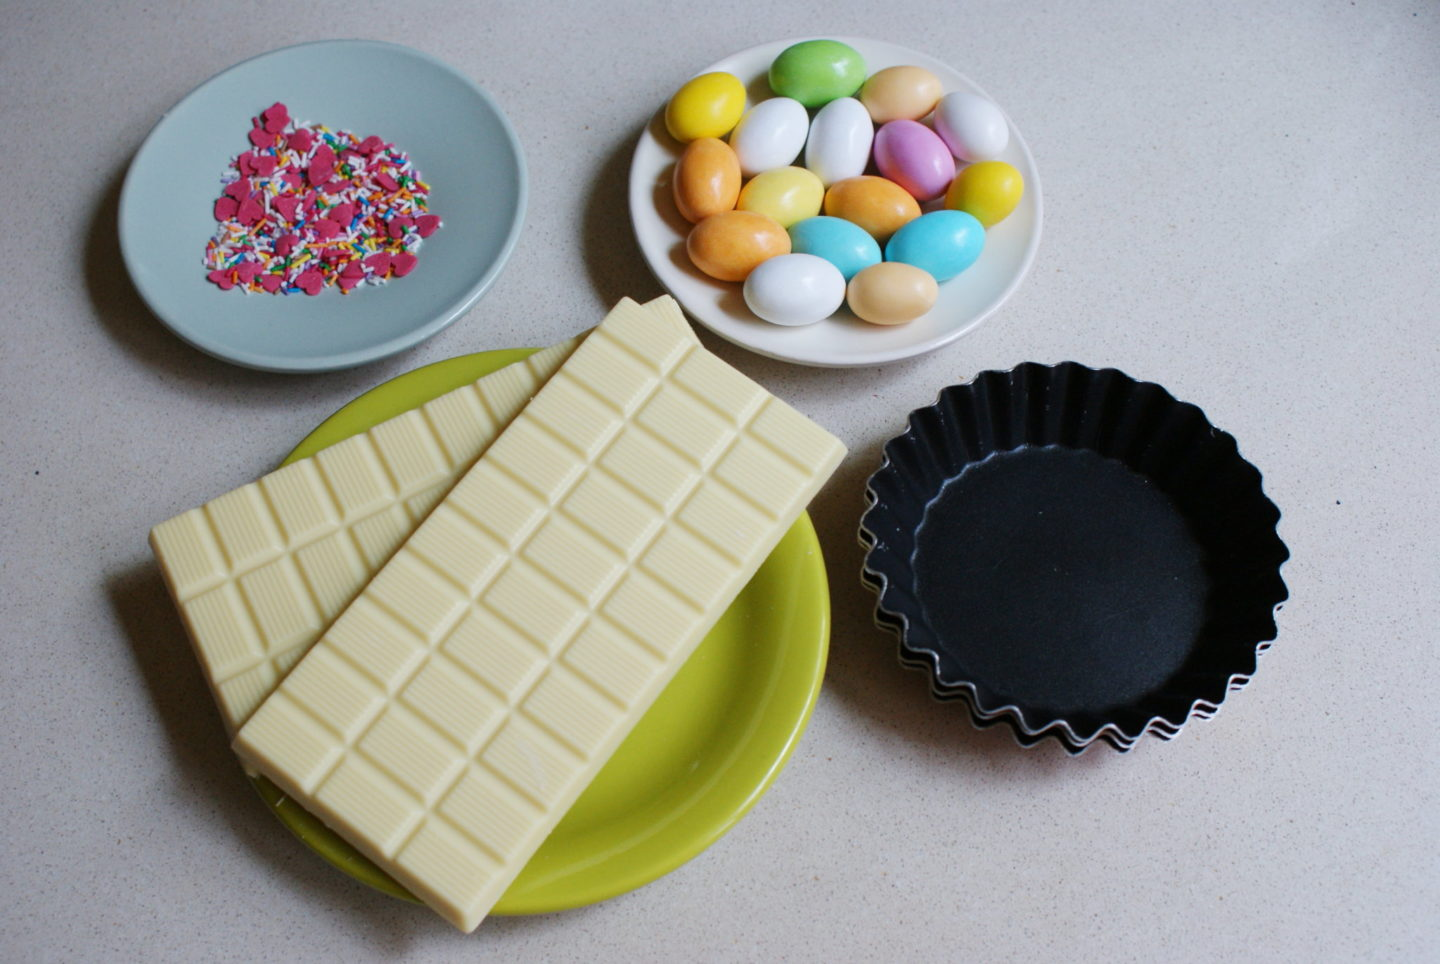 a tray with ingredients set out including multi coloured mini eggs, white chocolate, pink sprinkles and a cup case